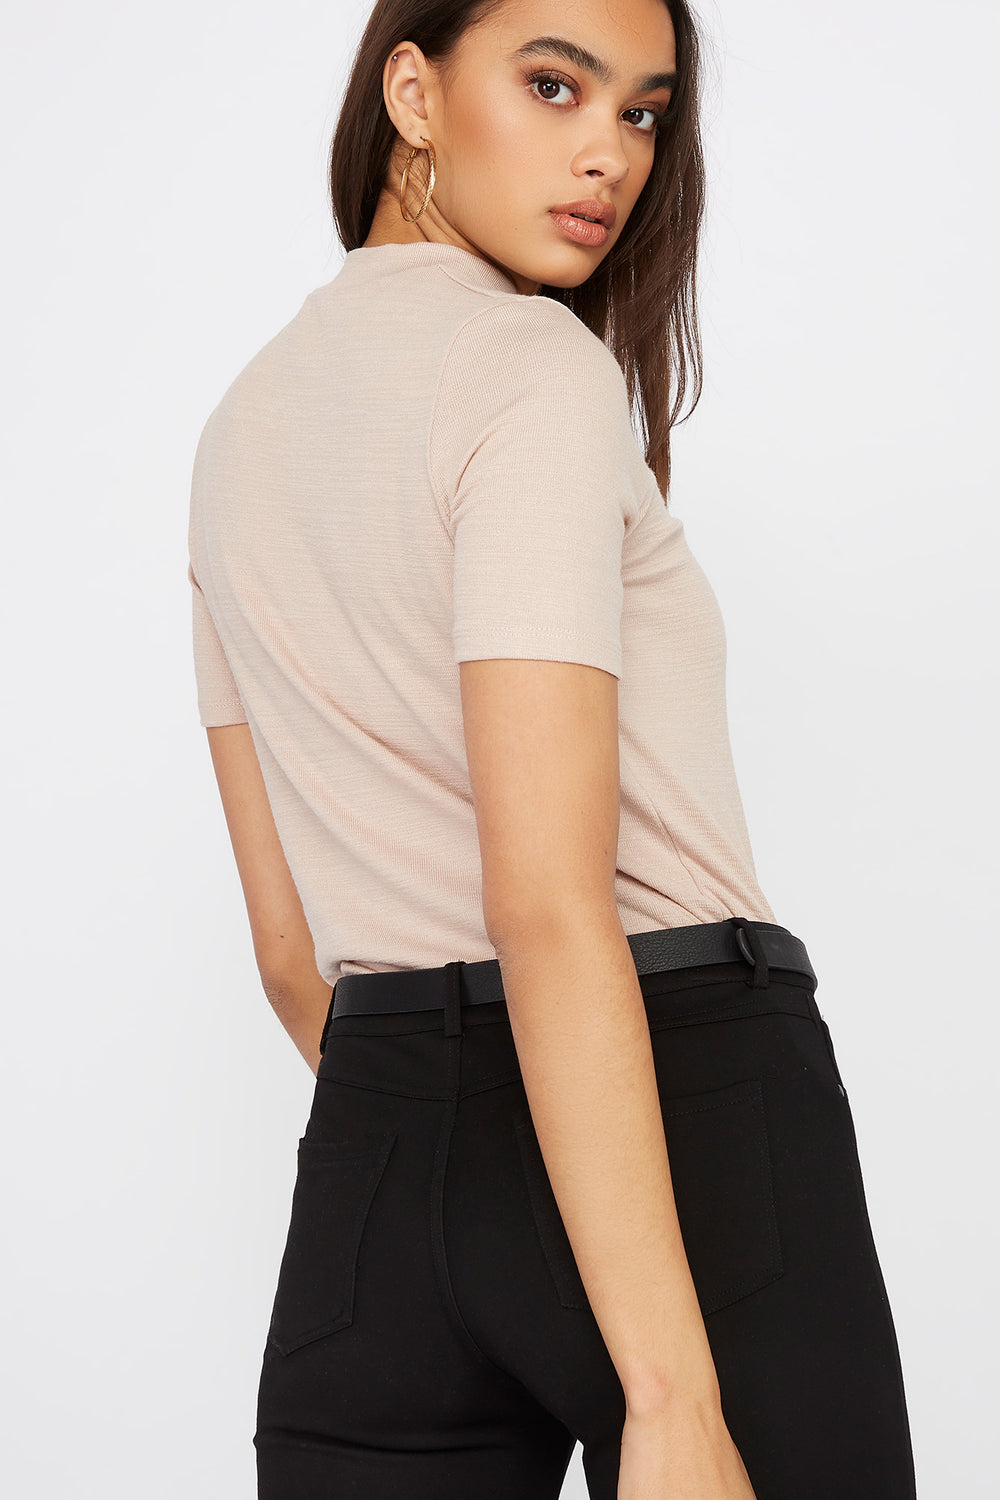 Heather Mock Neck Short Sleeve Oatmeal